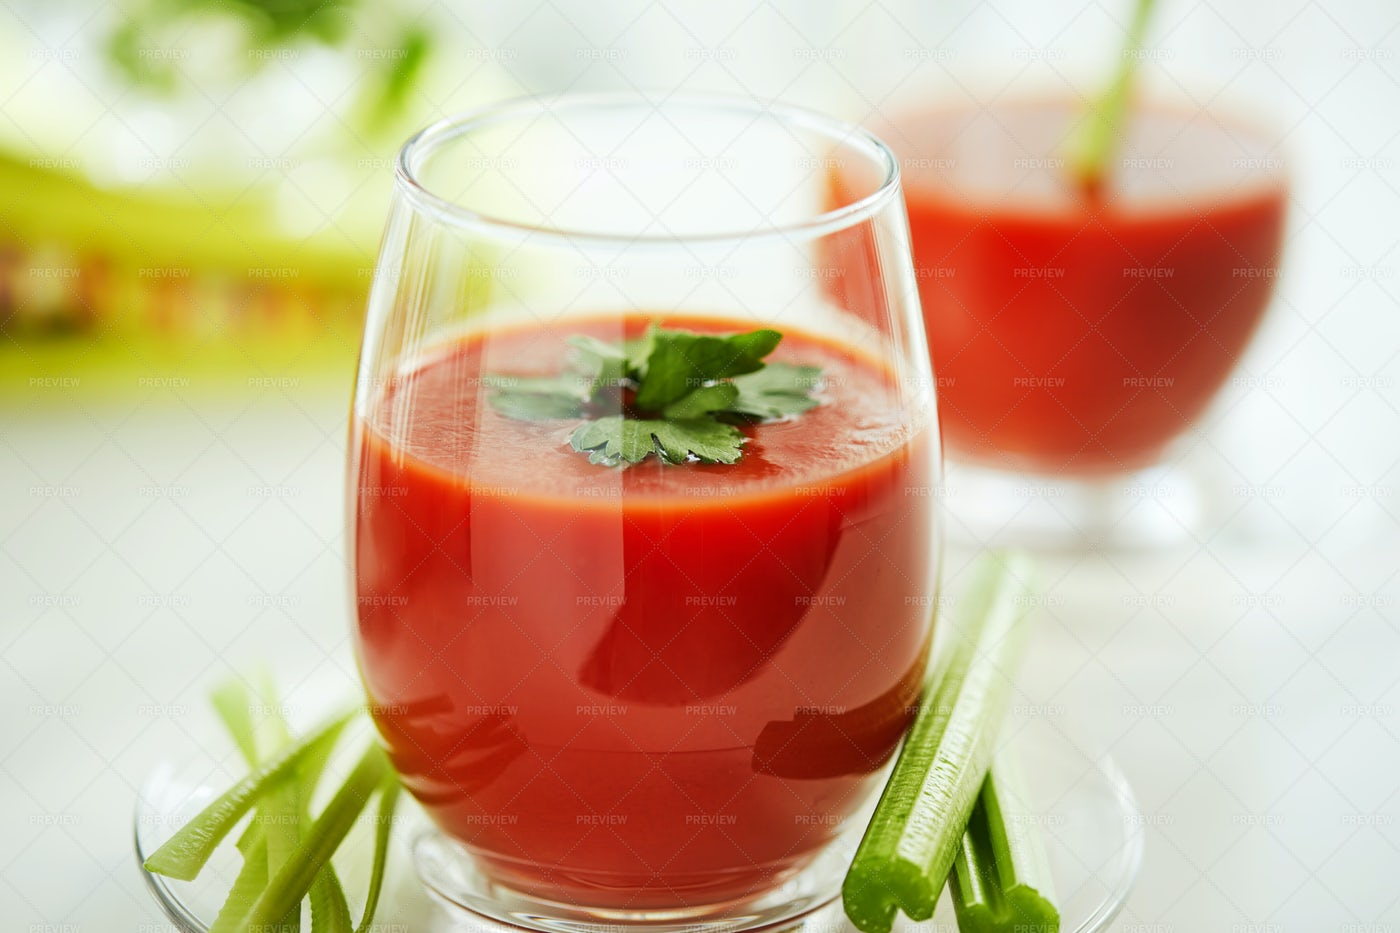 Tomato Juice: Stock Photos